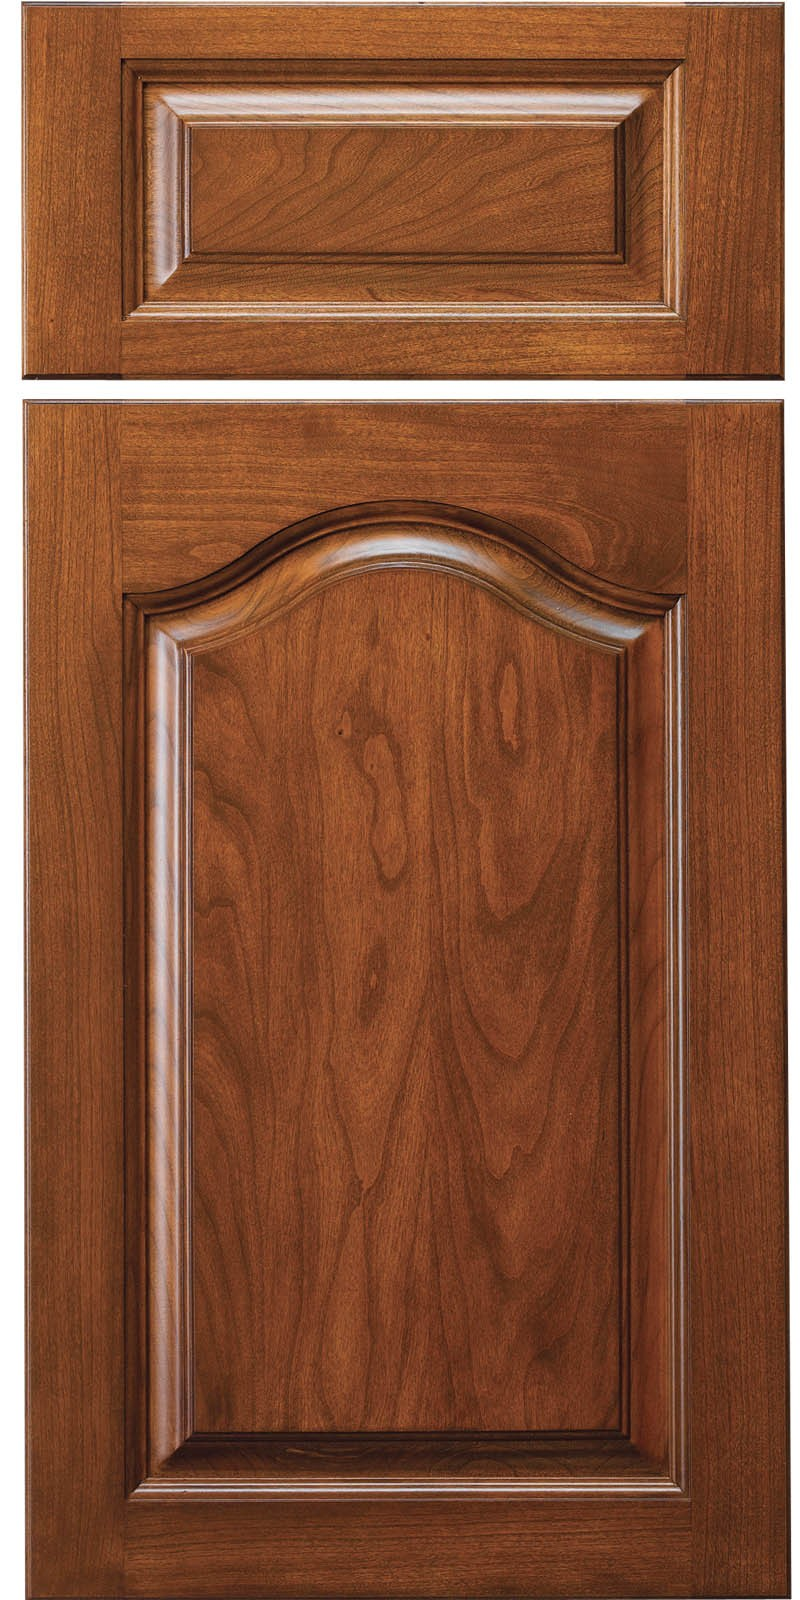 Denton Cathedral Conestoga West Cabinet Doors Amp Drawer